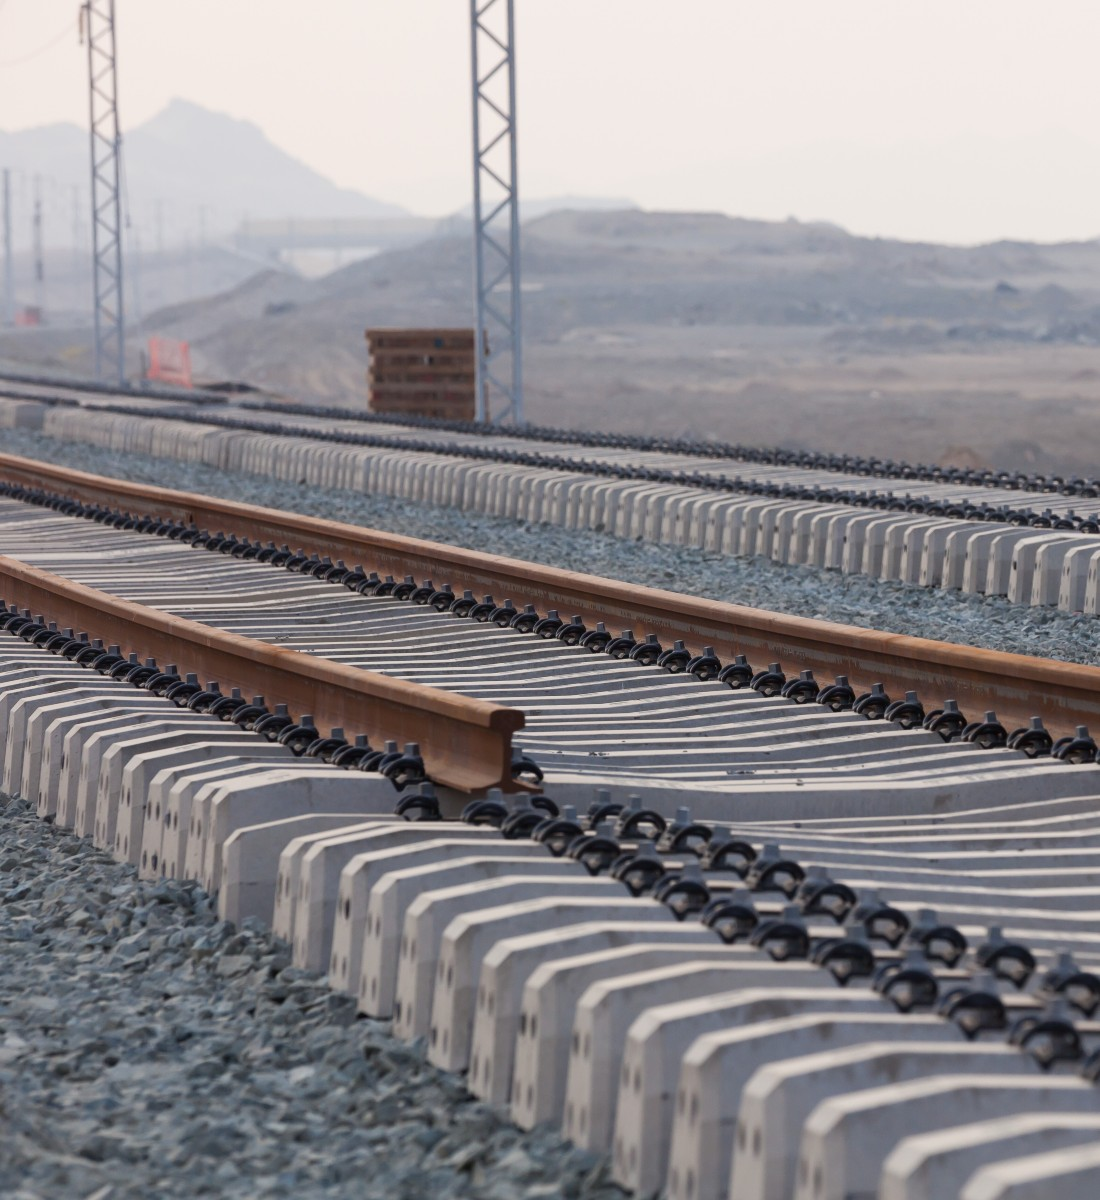 The train of the desert knowledge export